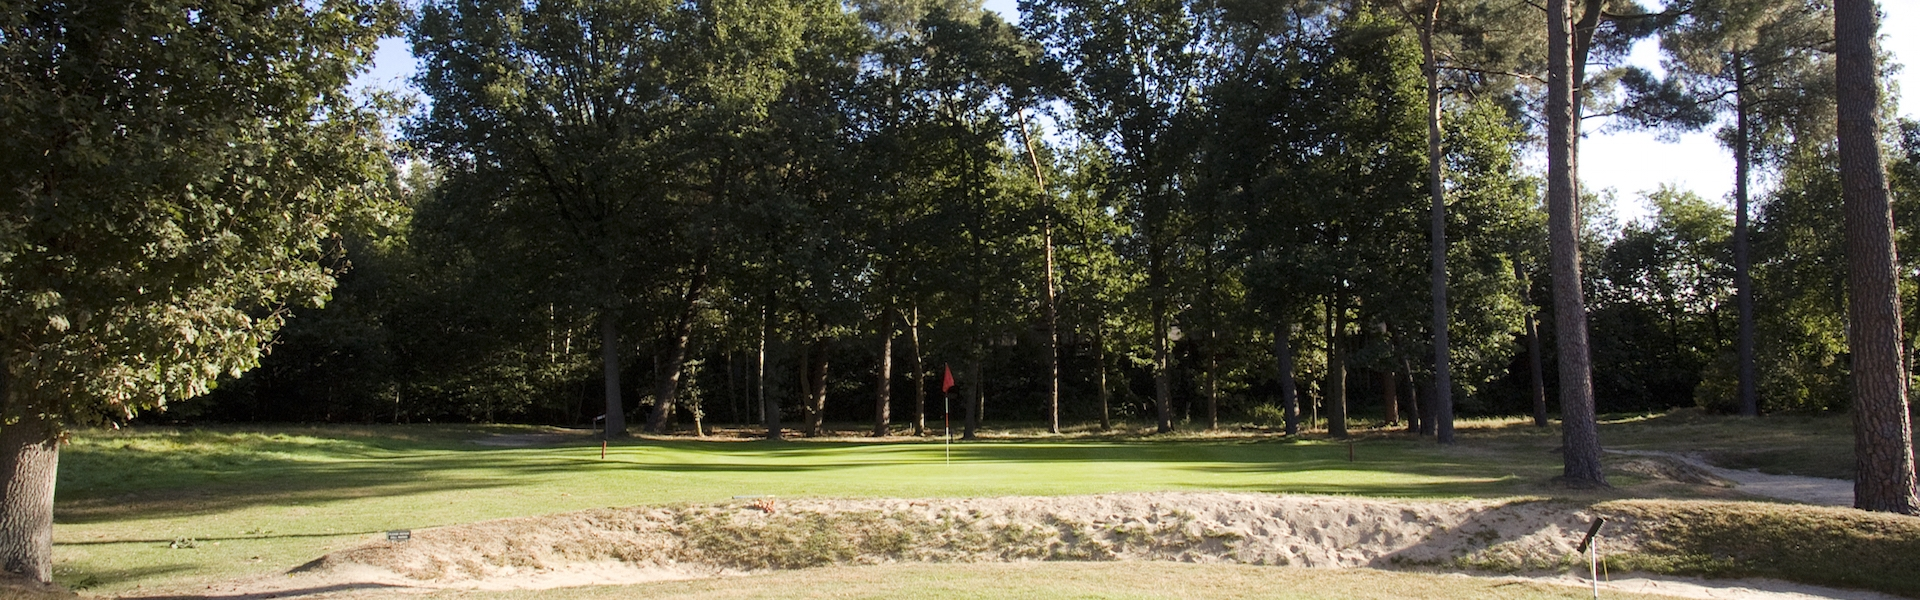 Zondag 6 november - TEXAS SCRAMBLE